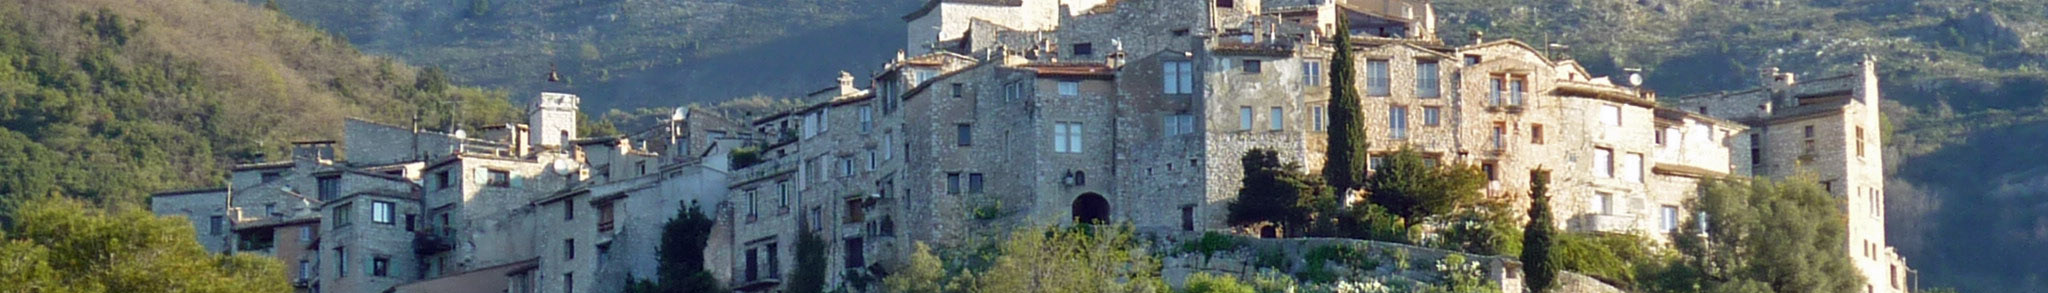 Tourrettes Sur Loup Travel Guide At Wikivoyage